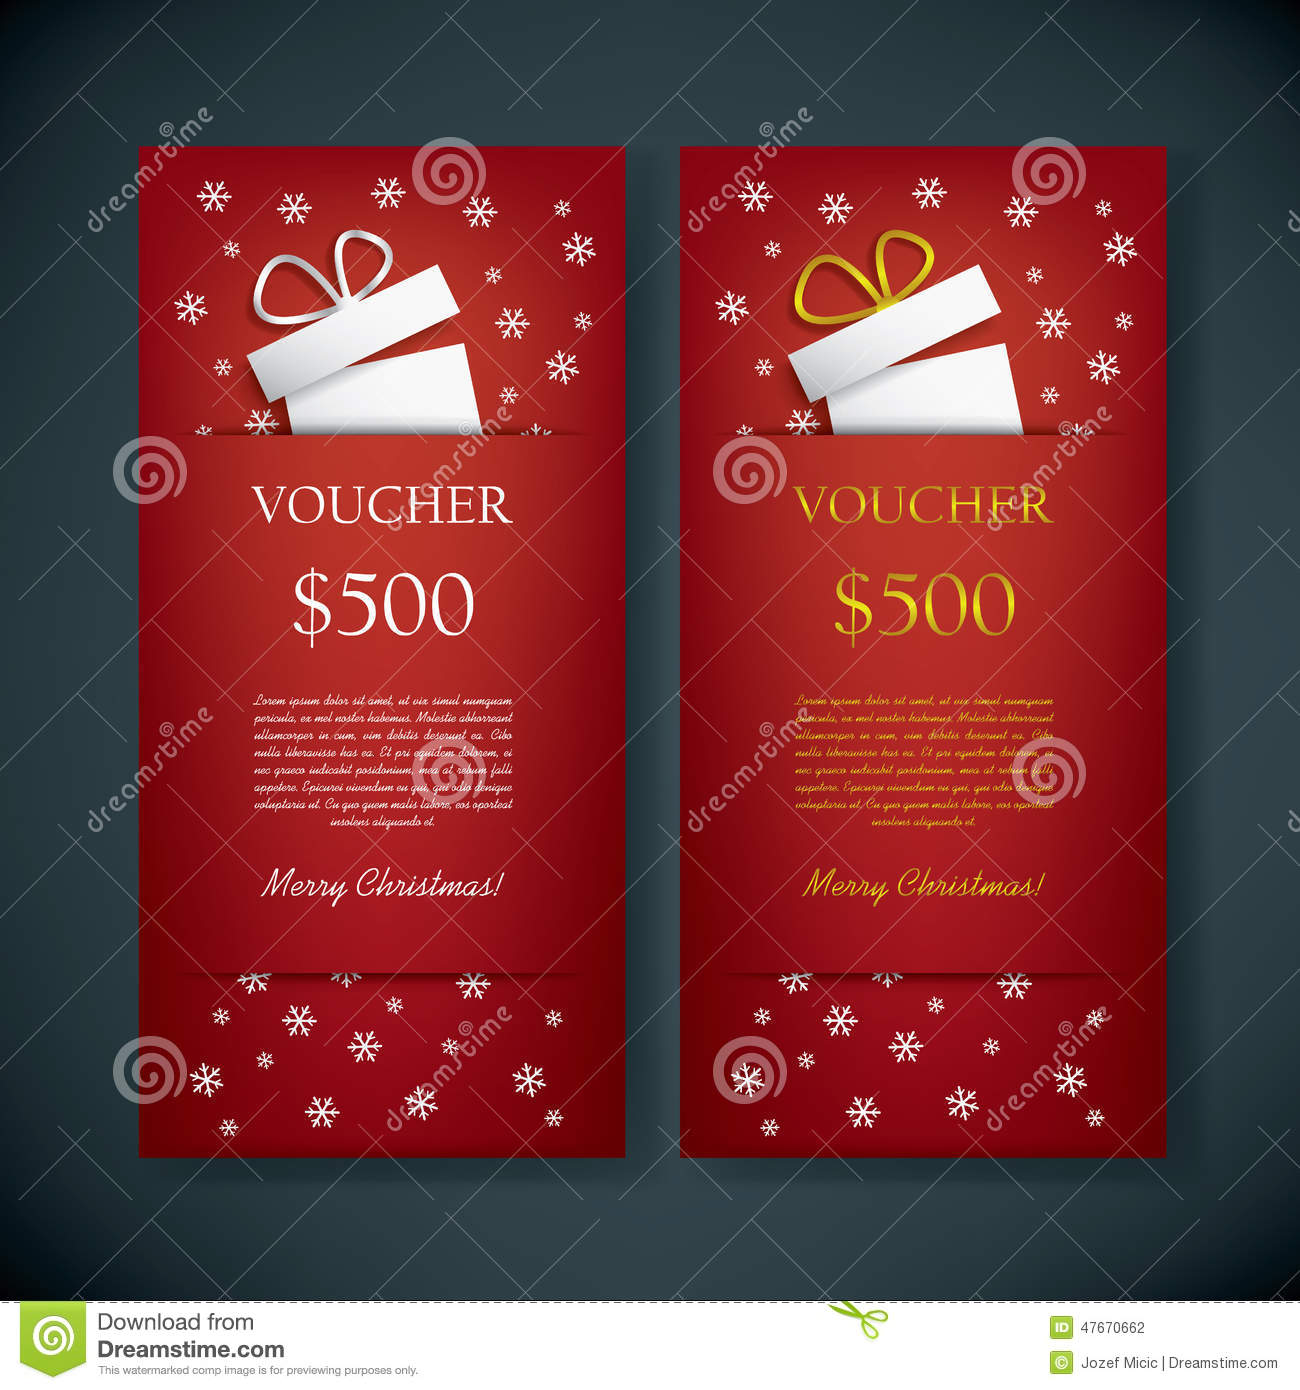 christmas voucher templates free download - Muco.kiessling.co